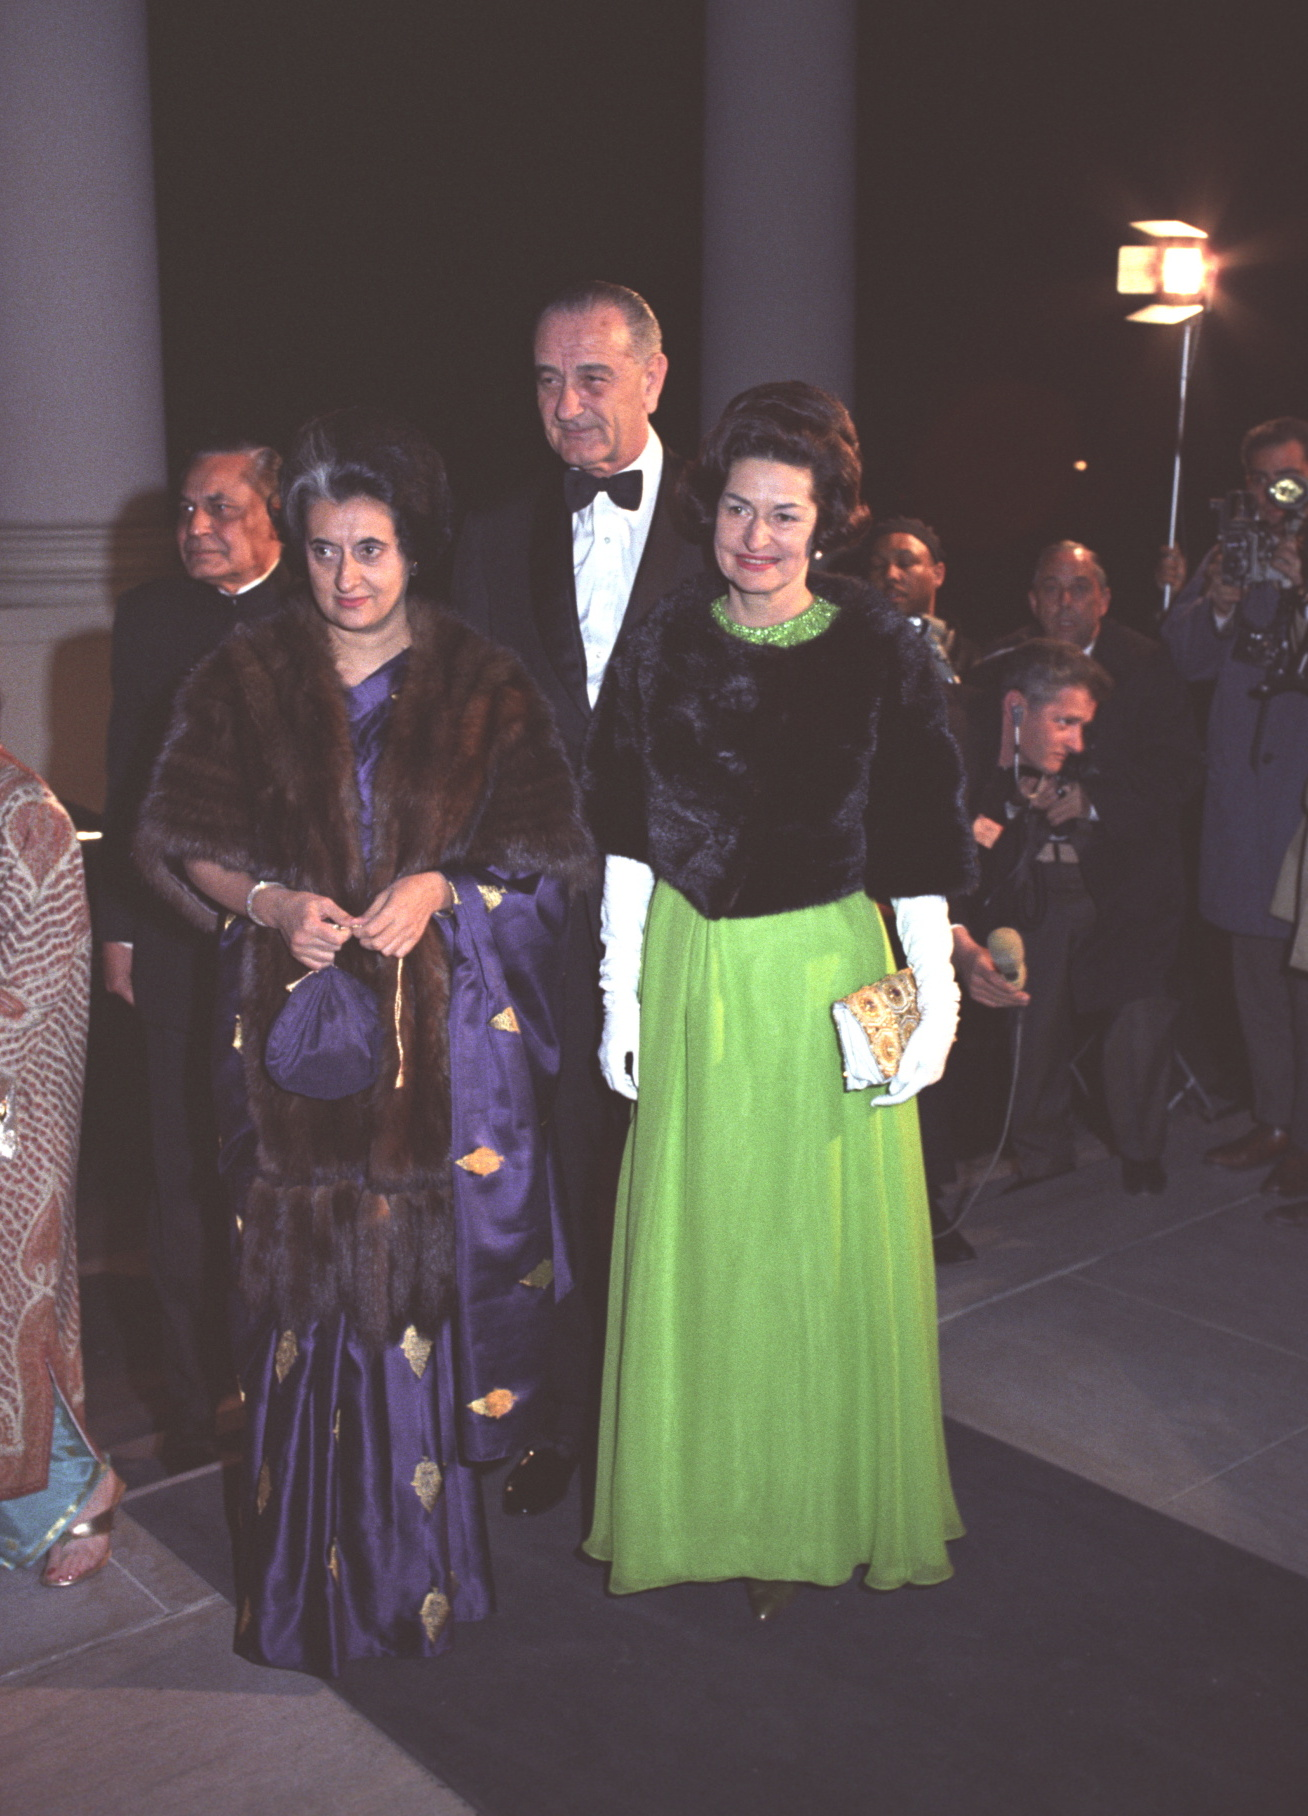 Prime Minister Indira Gandhi and President and First Lady Johnson in Washington, DC, March 1966.